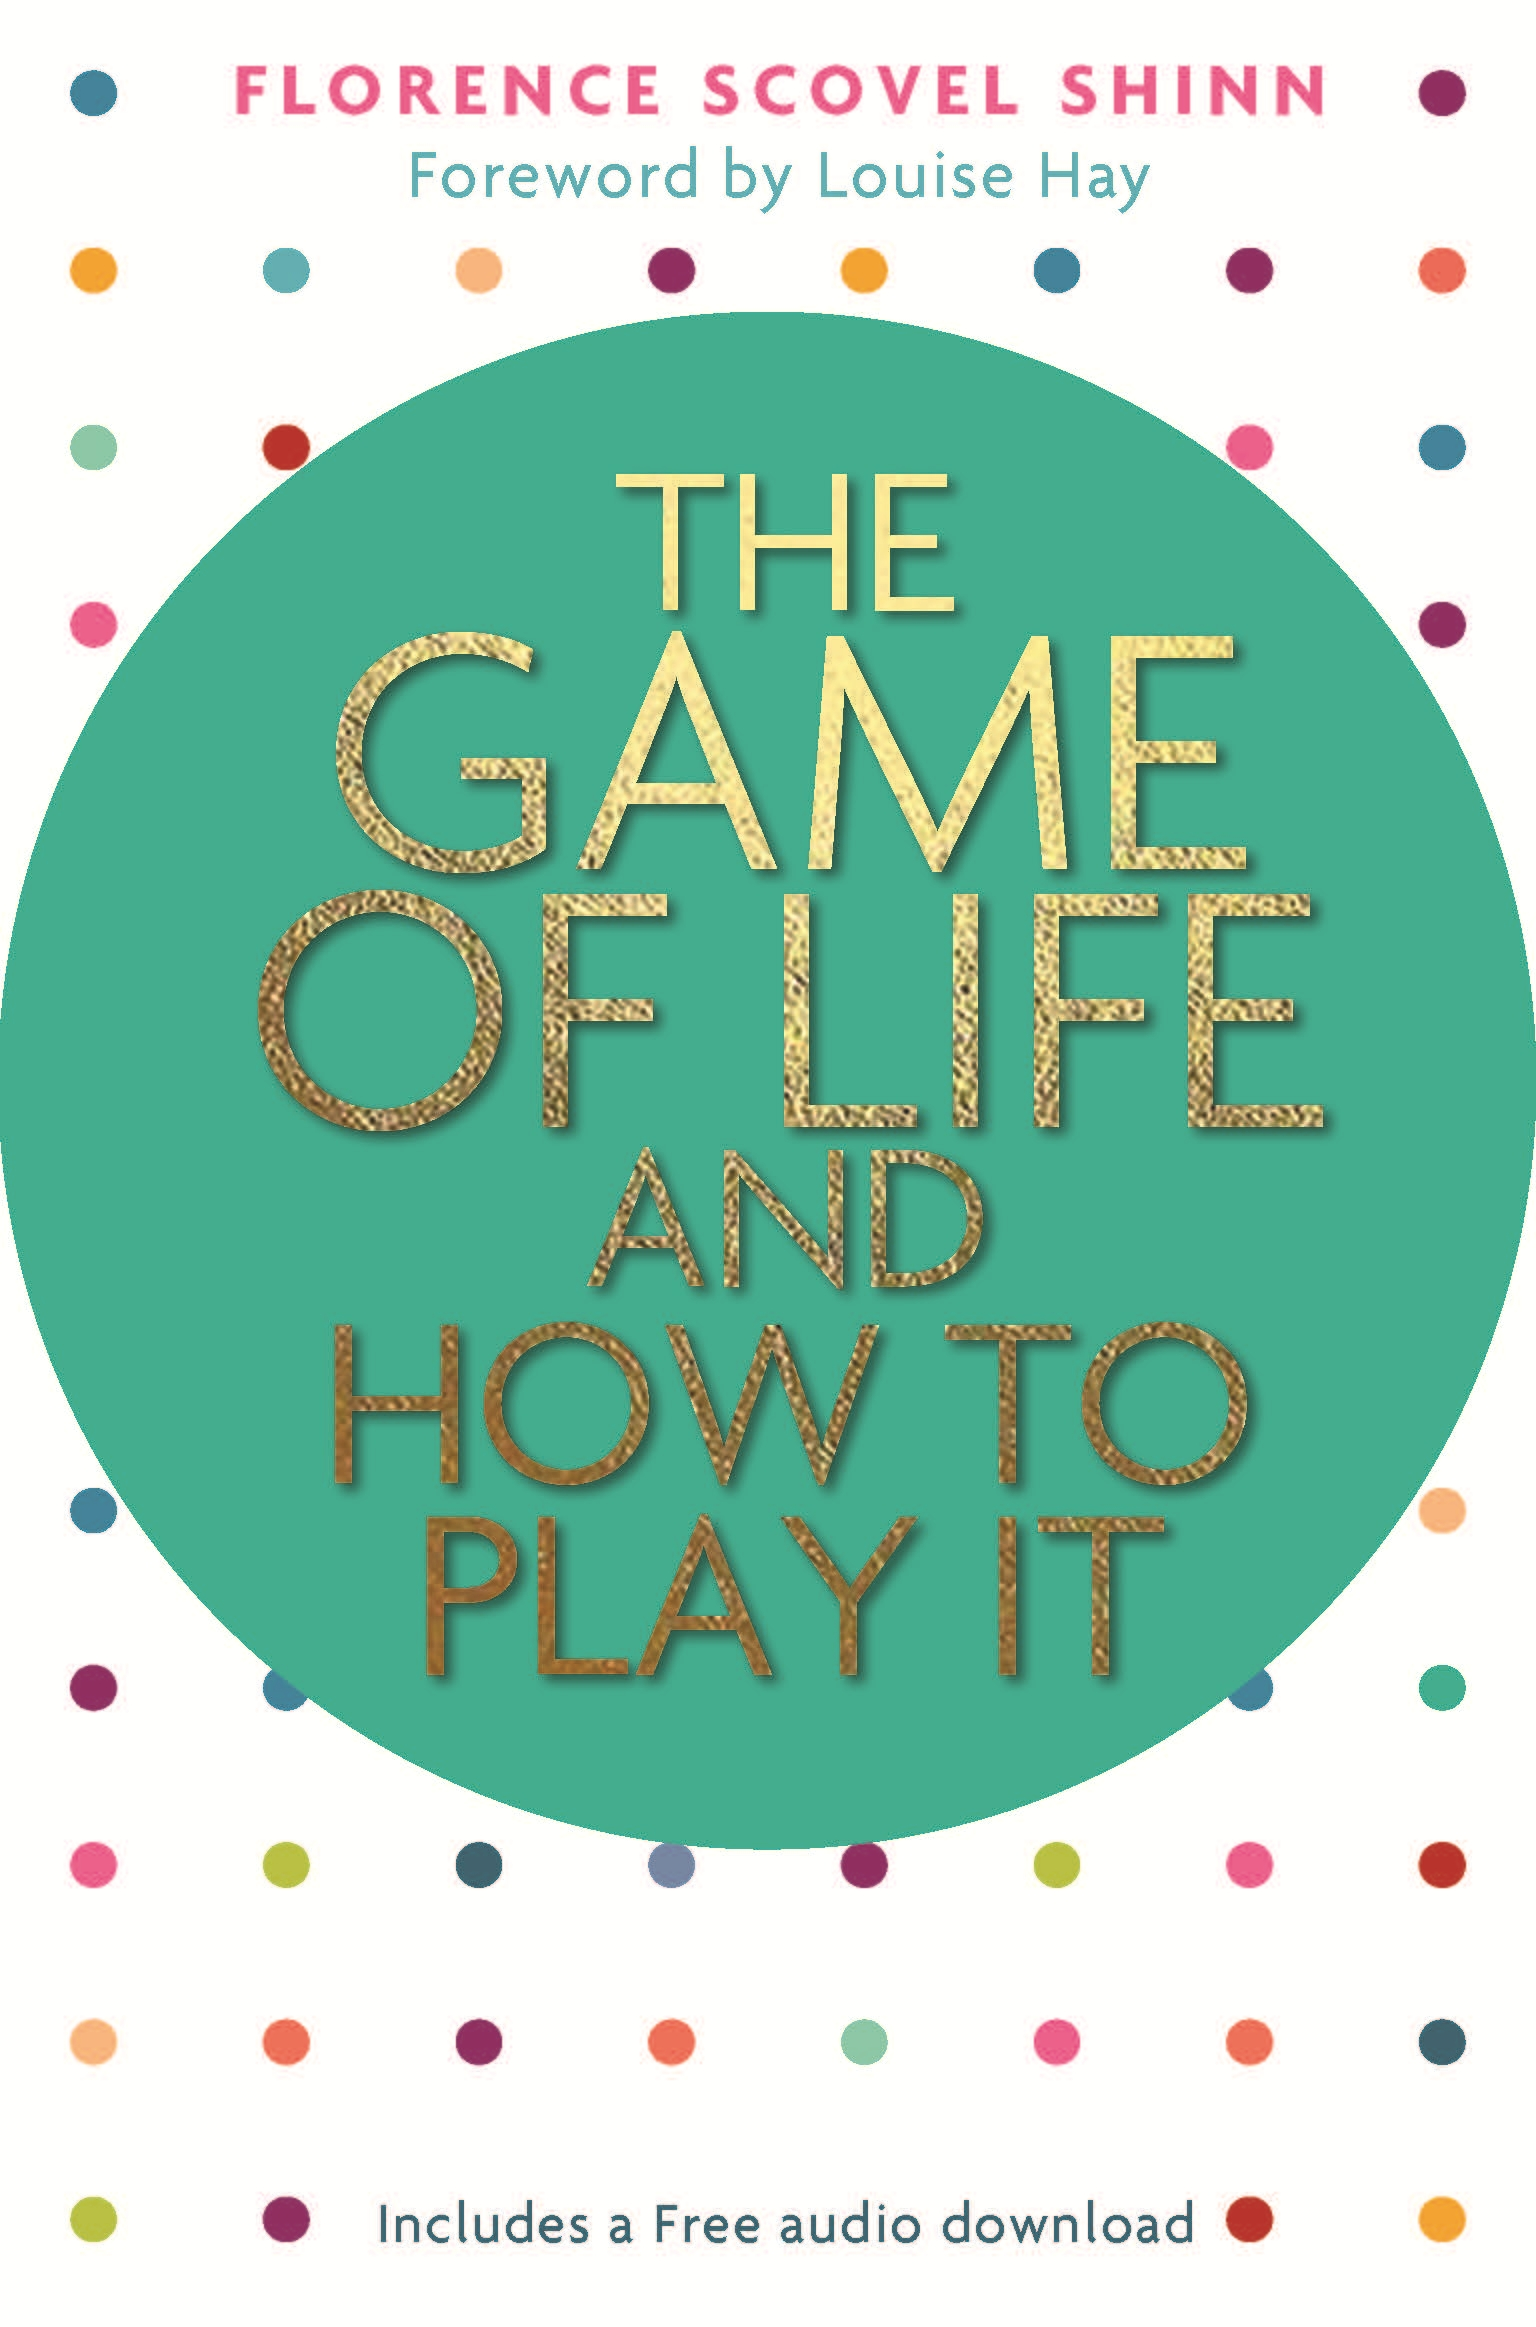 The Game of Life and How to Play It | Penguin Books Australia